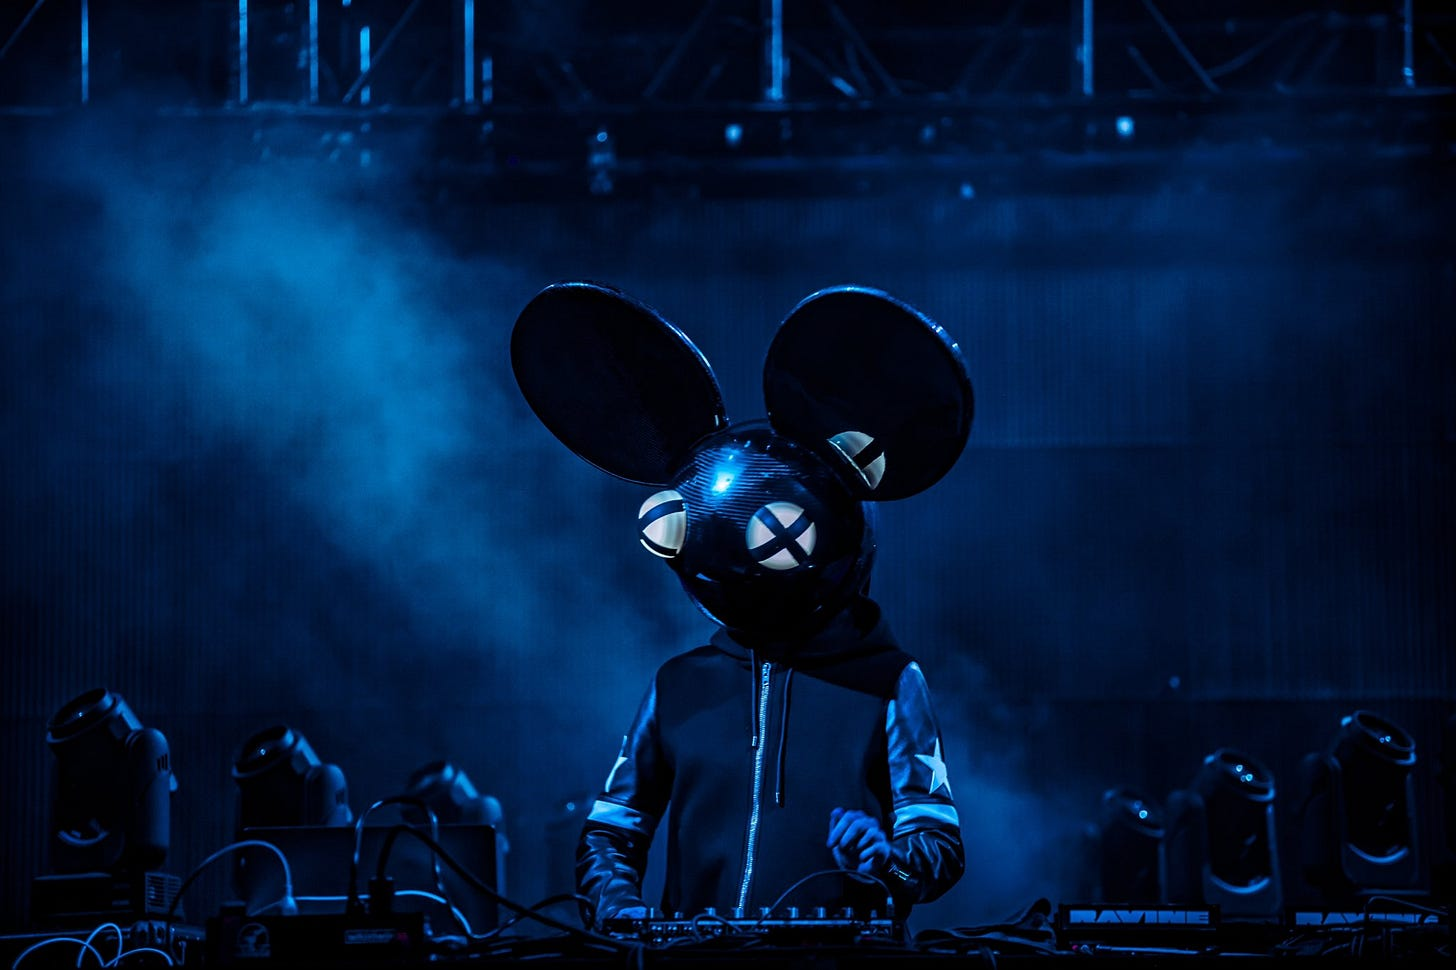 Day Of The deadmau5 in Atlanta Gave Me Hope For The Future | EDM Identity